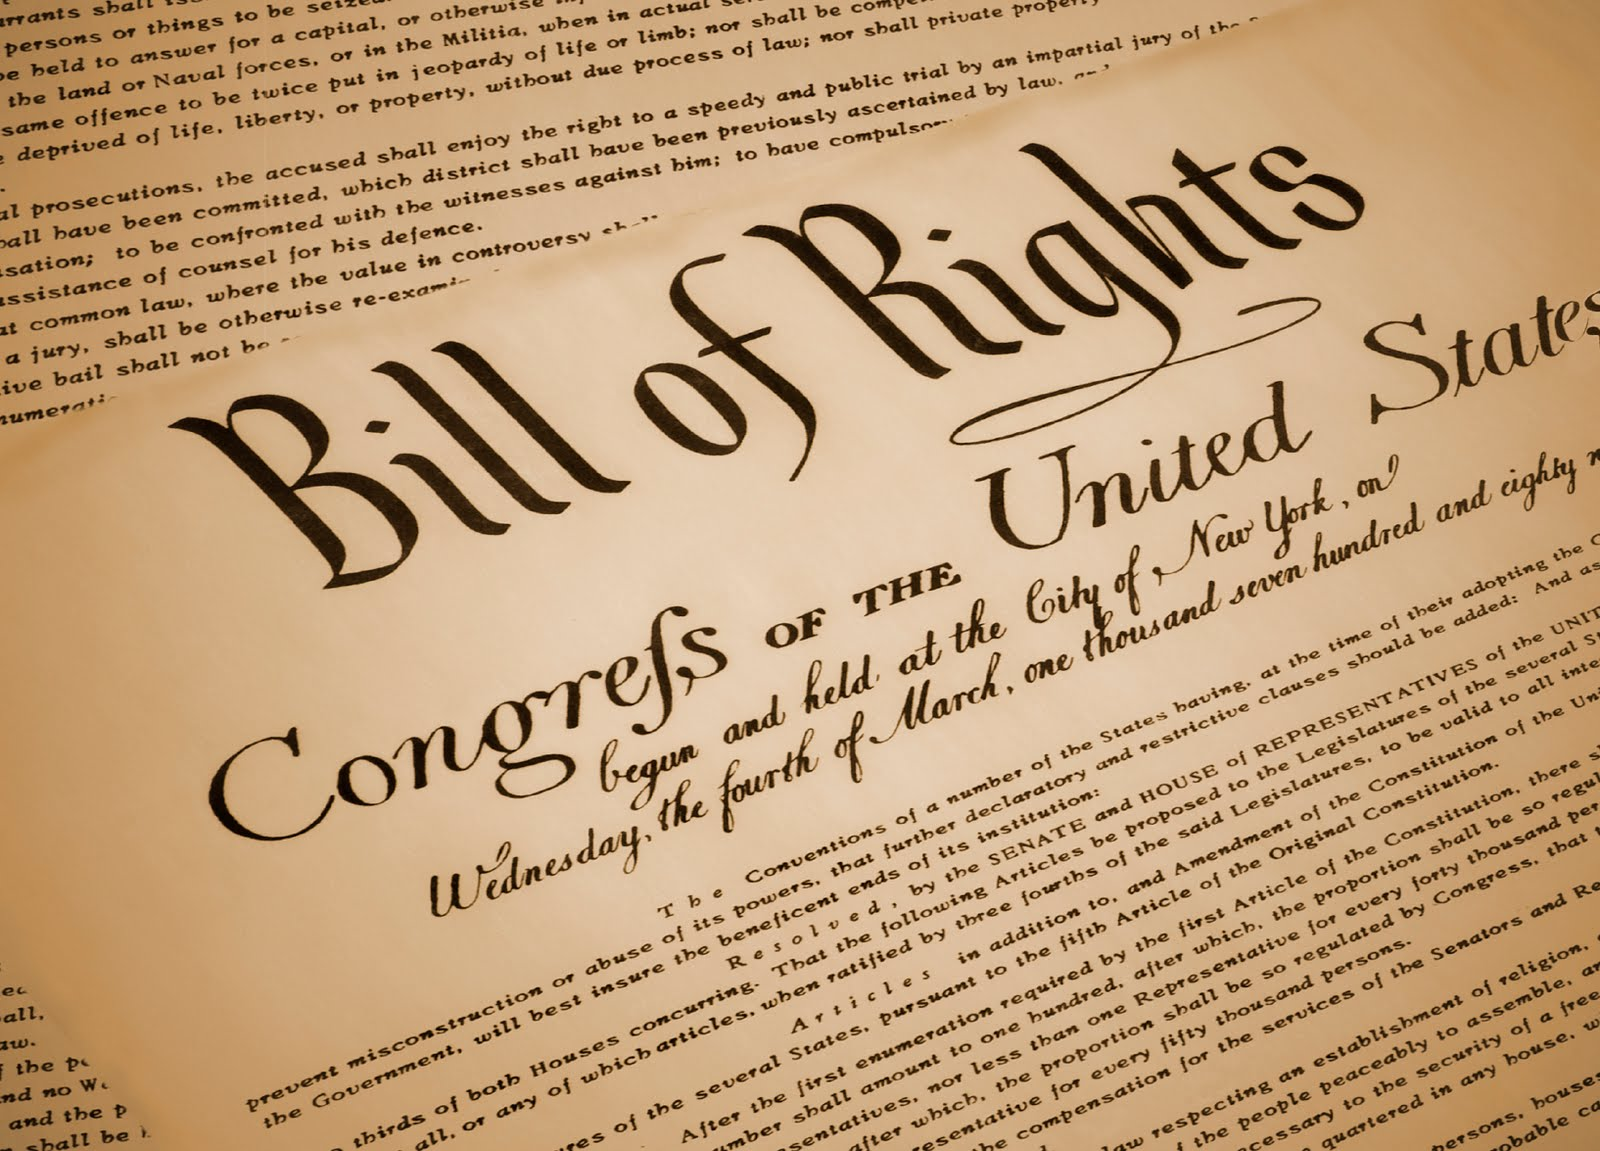 texas citizen s bill of rights know your rights during a police encounter